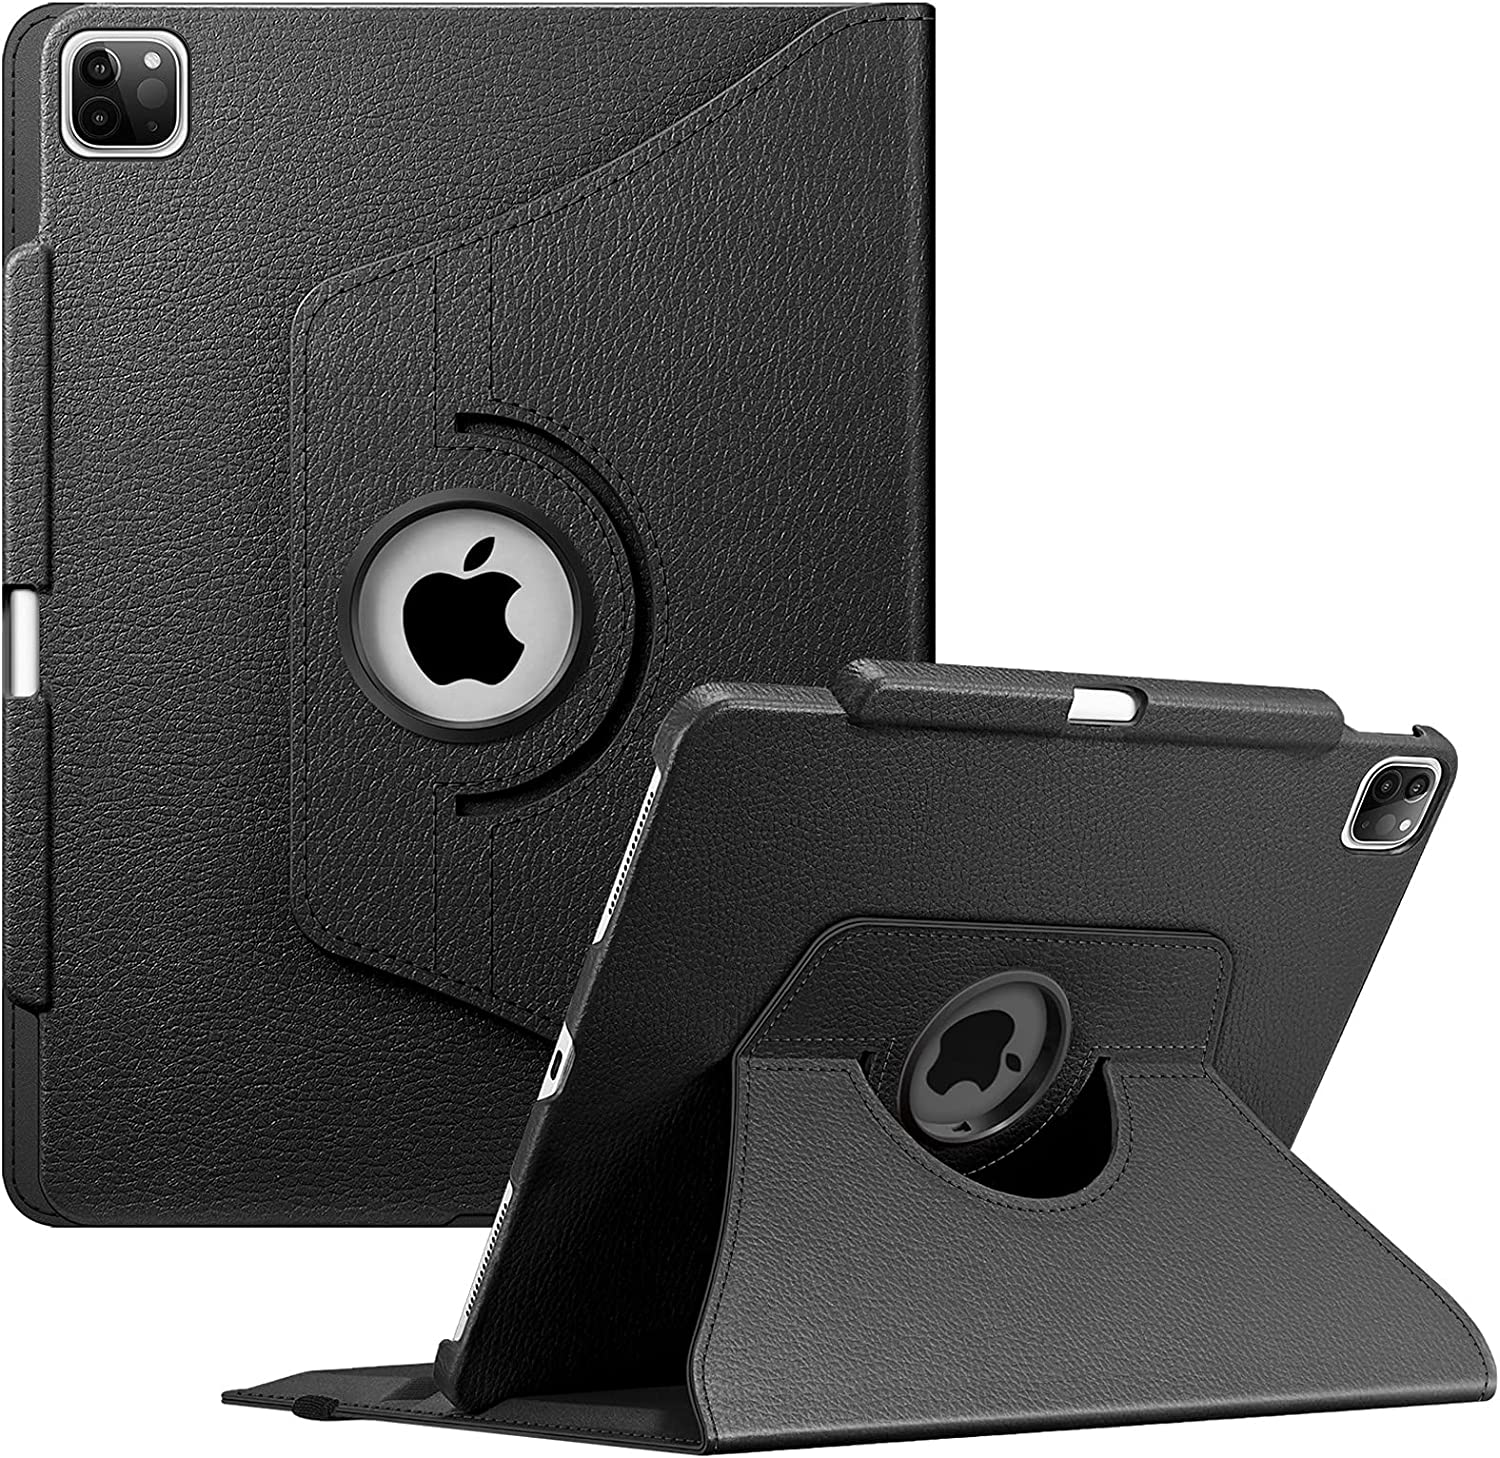 Fintie Rotating Case for iPad Pro 12.9-inch 5th Generation 2021 - 360 Degree Swiveling Protective Cover w/Pencil Holder Support Auto Sleep/Wake, Also Fit iPad Pro 12.9